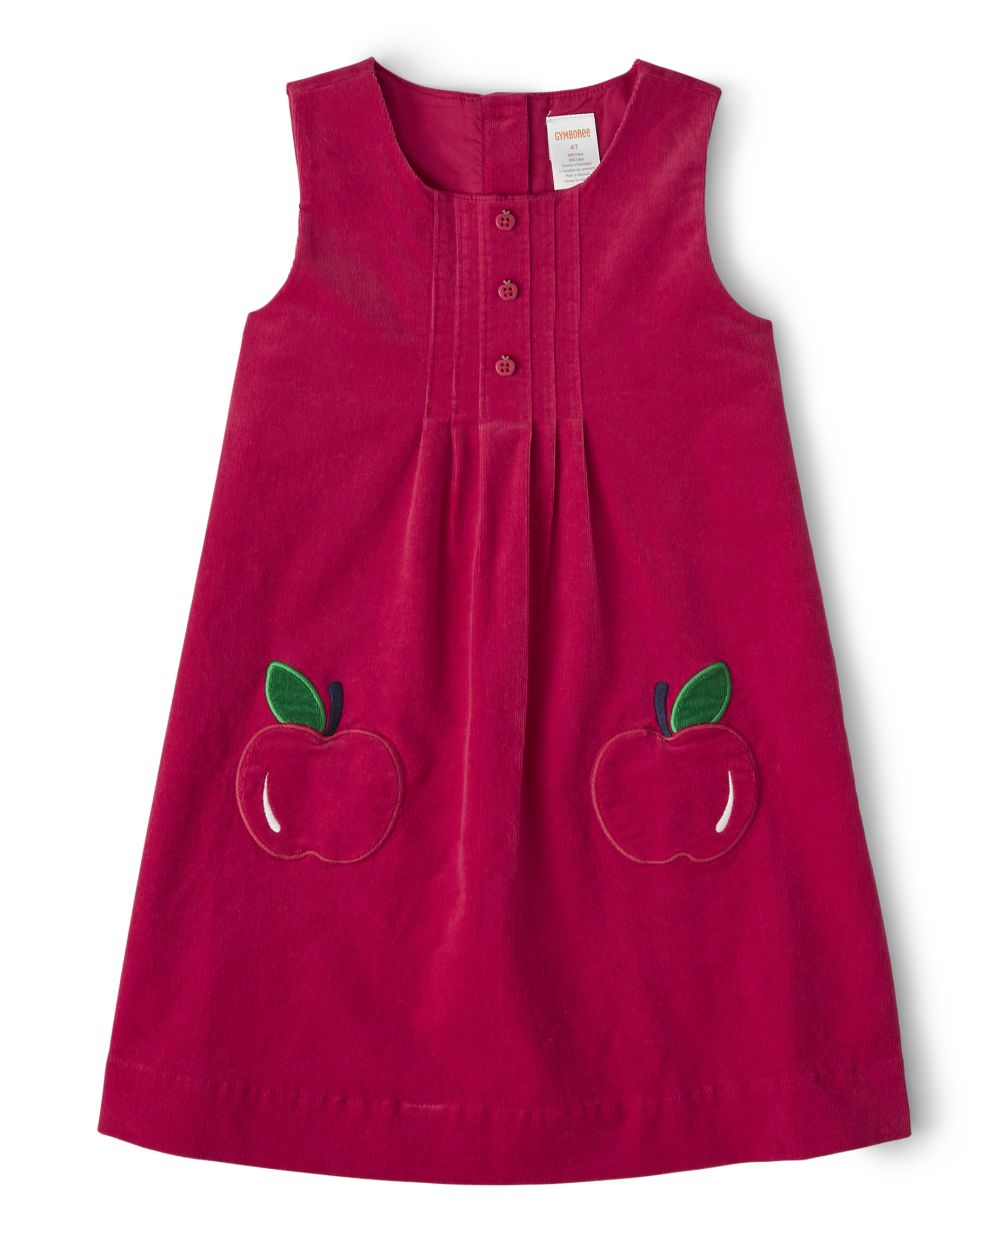 Girls Applique Corduroy Jumper - Candy Apple